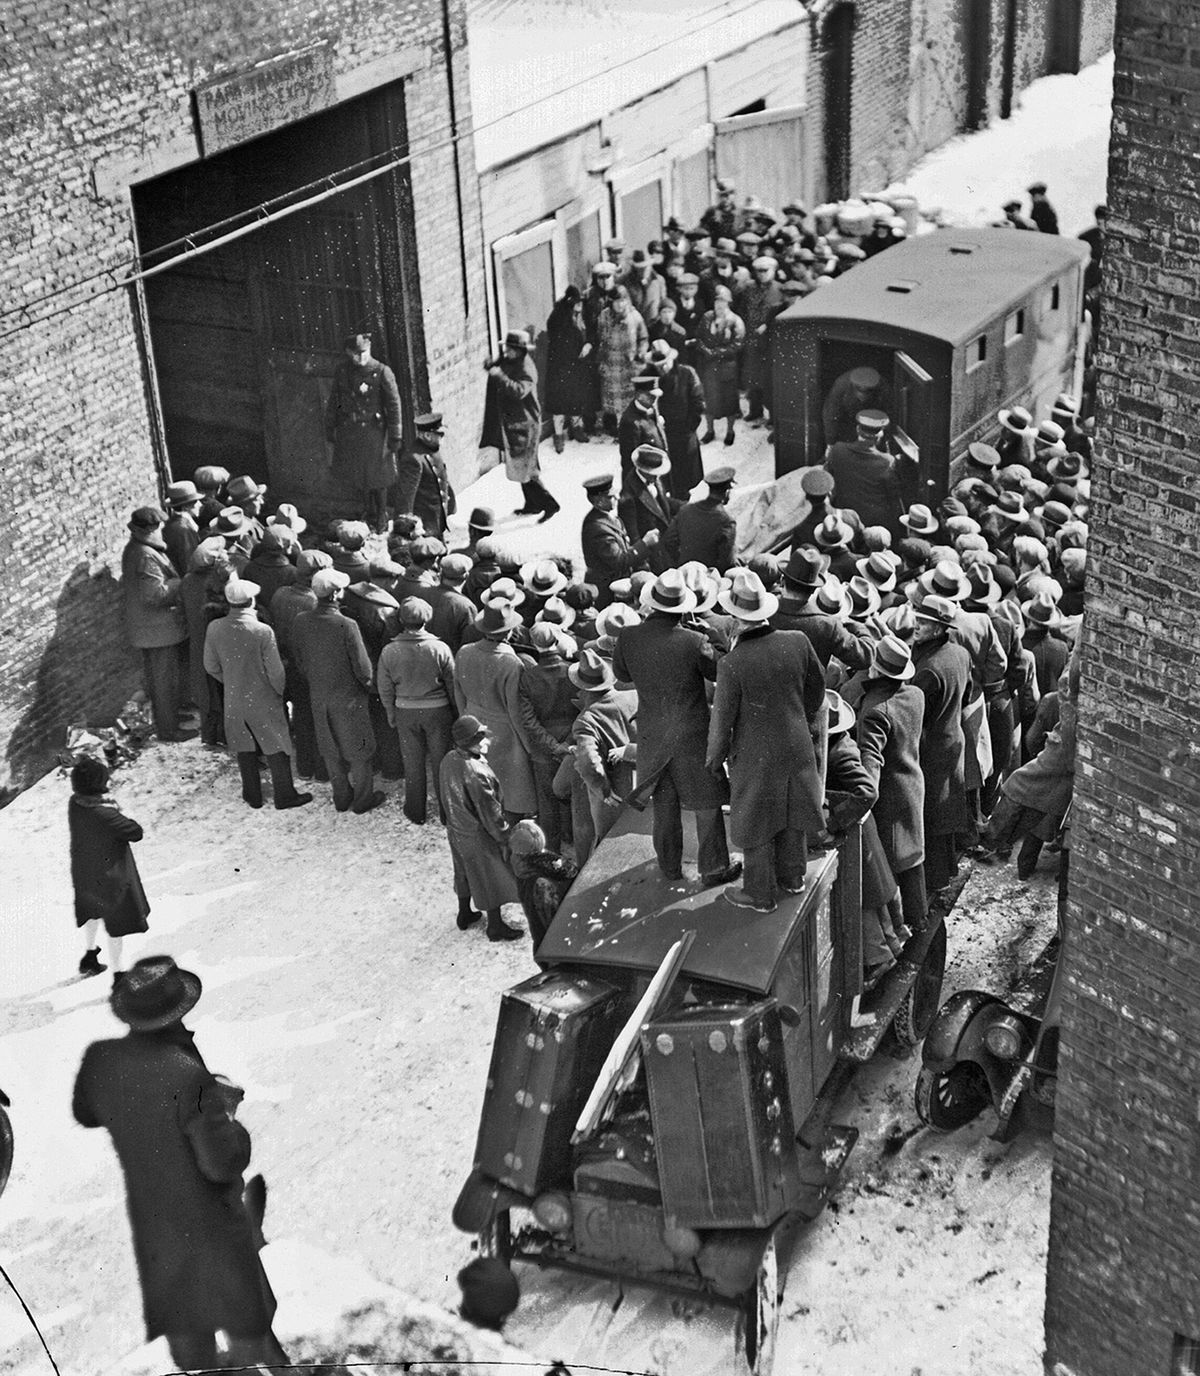 A body is removed from the S.M.C. Cartage Co. garage on North Clark Street in Chicago on Feb. 14, 1929, following the St. Valentine's Day massacre.   Chicago History Museum/Distributed by the Associated Press